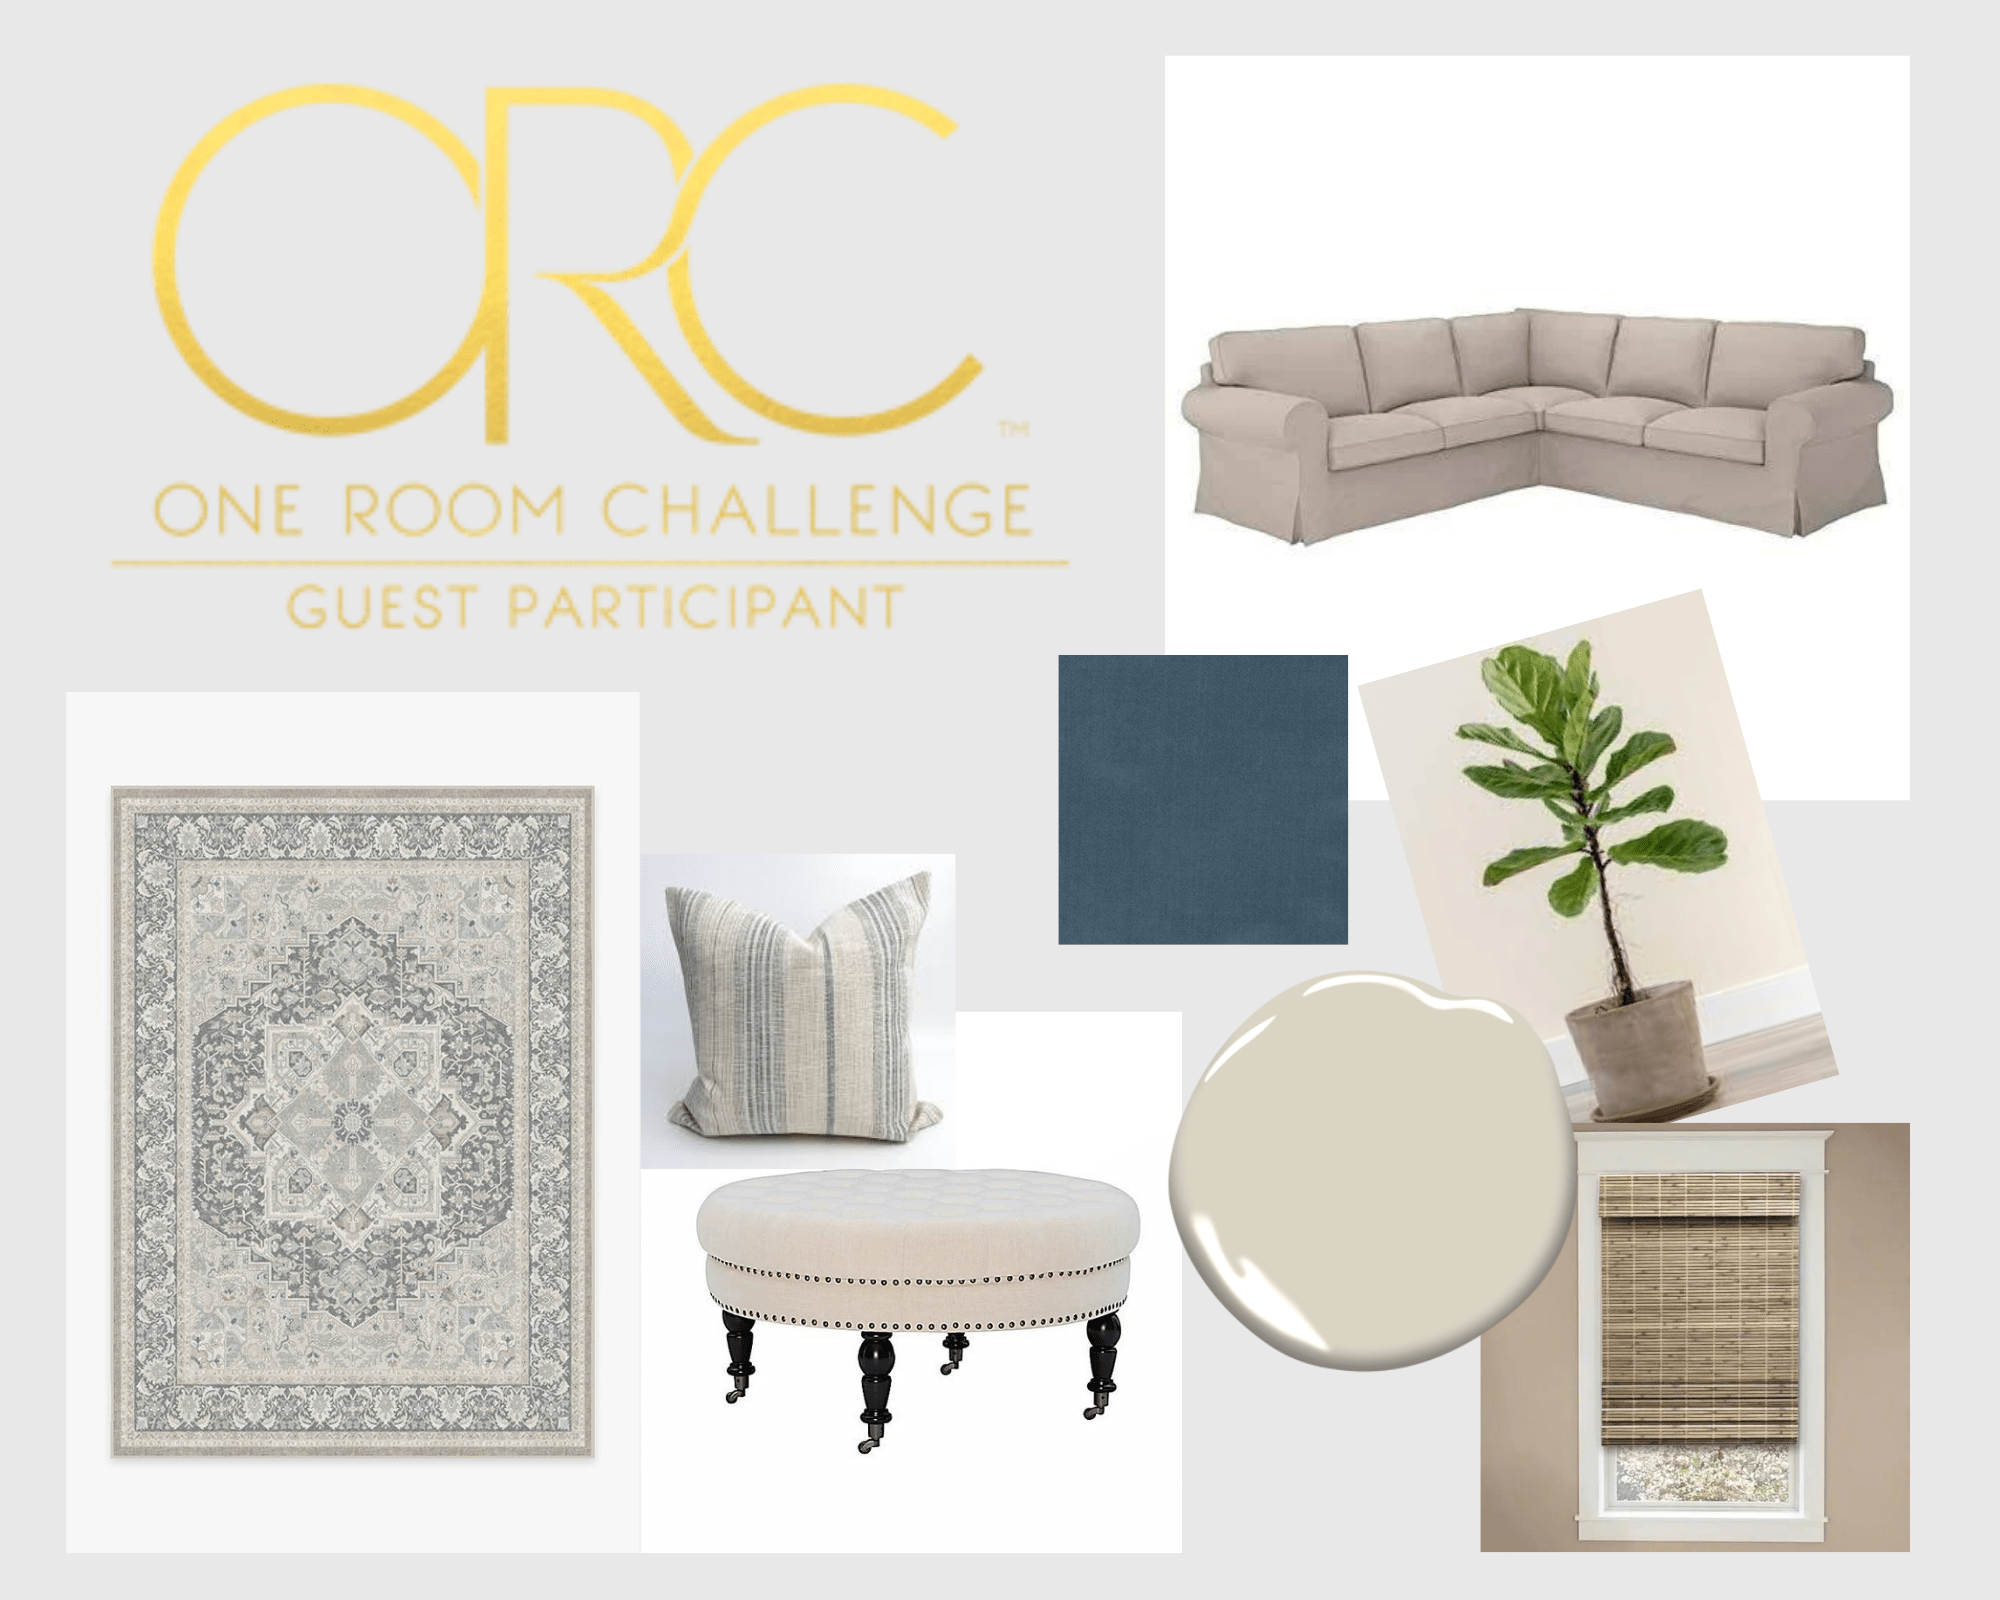 https://myfamilythyme.com/wp-content/uploads/2021/09/One-Room-Challenge-Mood-Board-1-e1633040600904.png